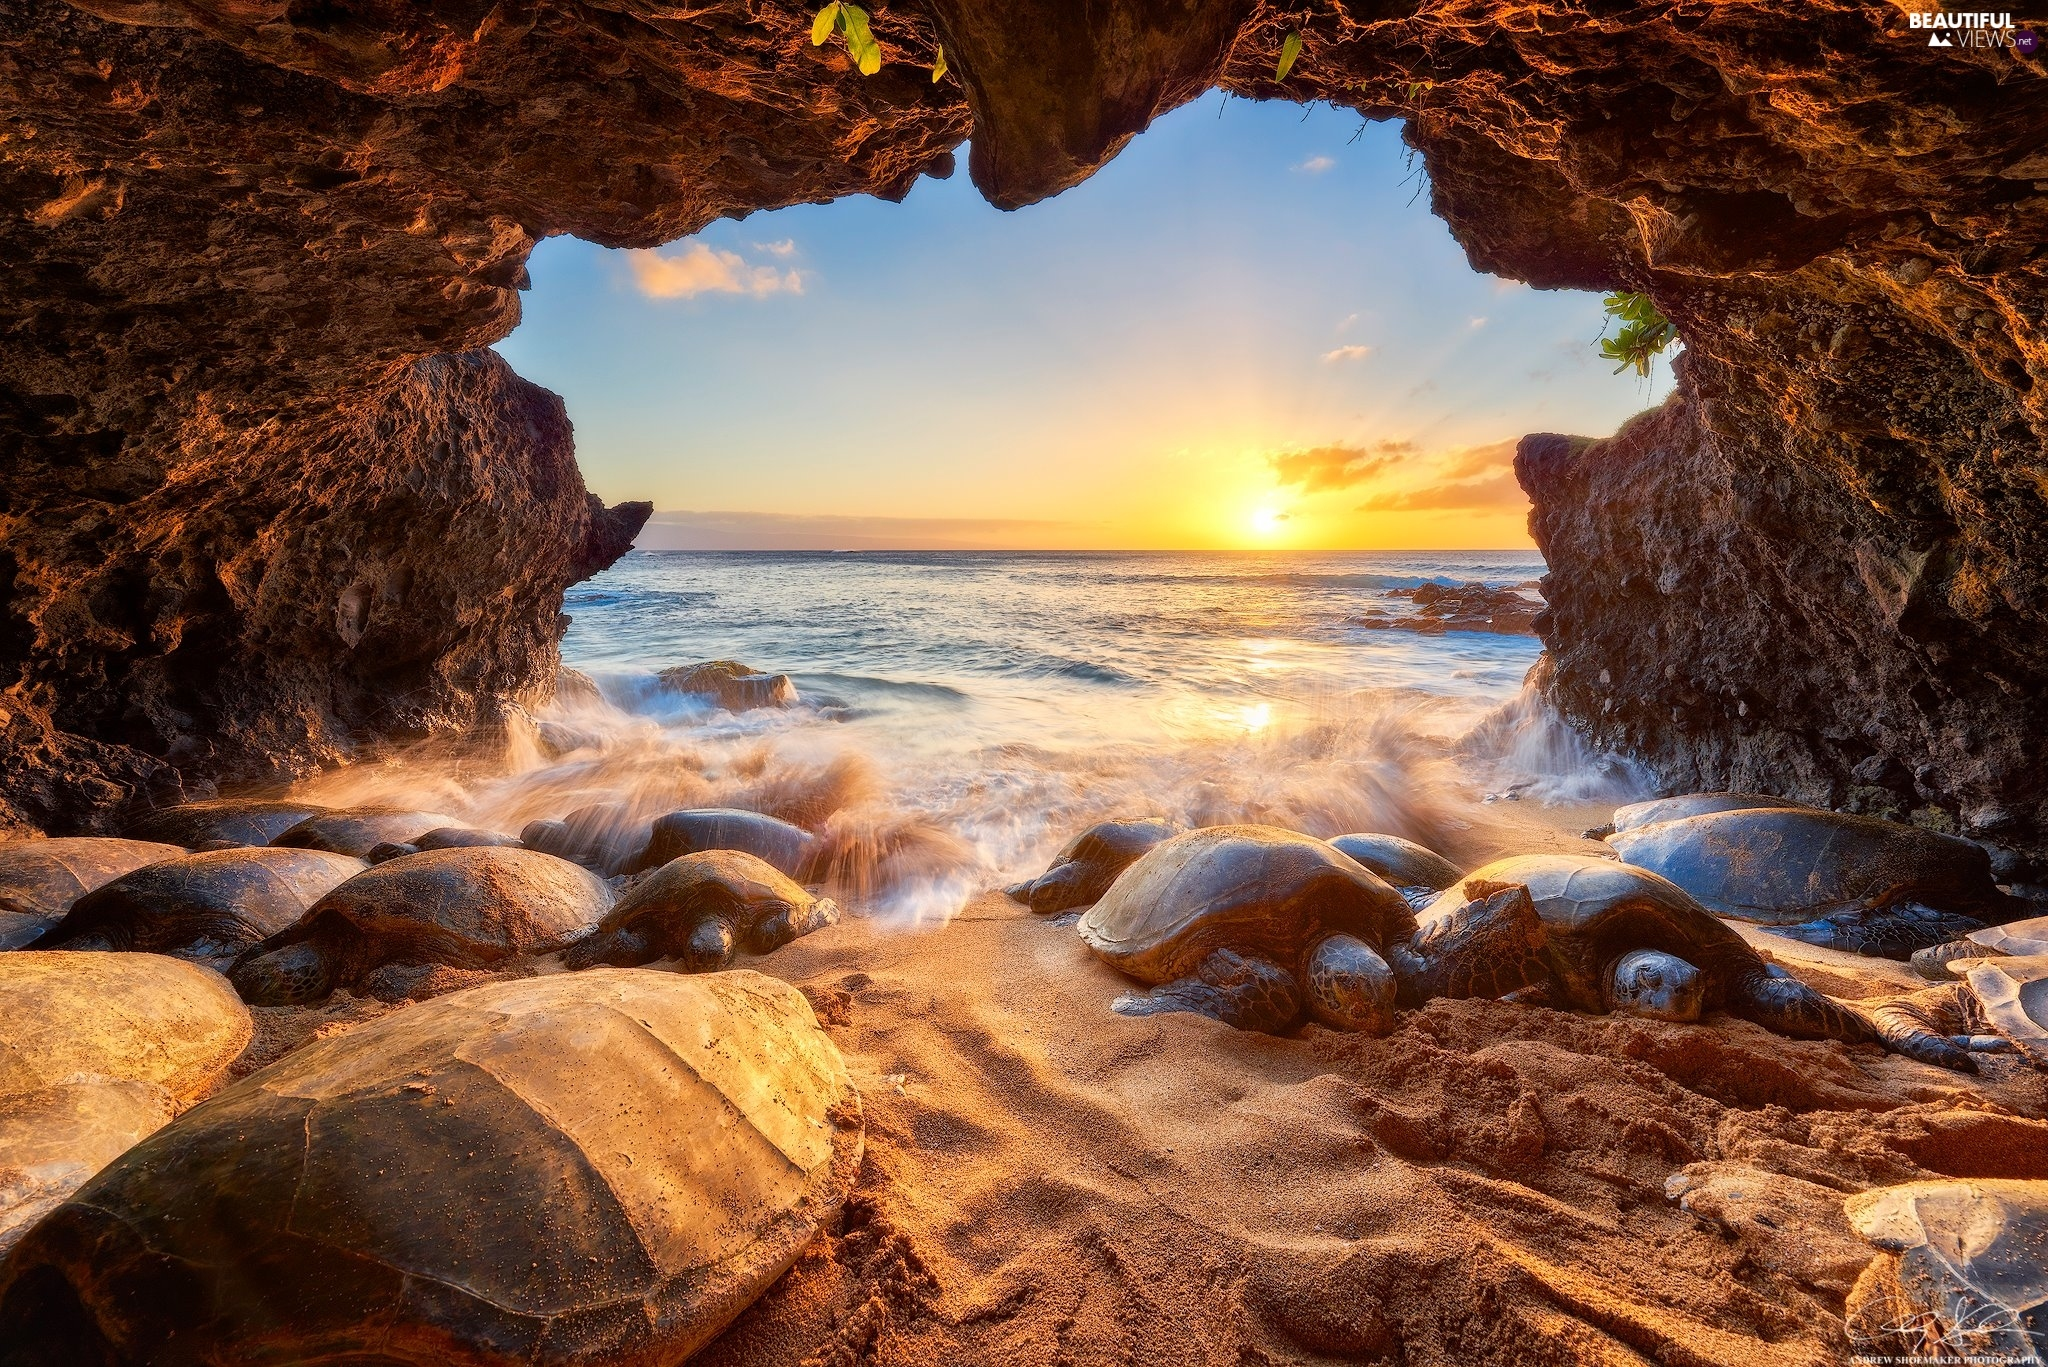 Sea Turtles, cave, Aloha State Hawaje, Great Sunsets, Pacific Ocean